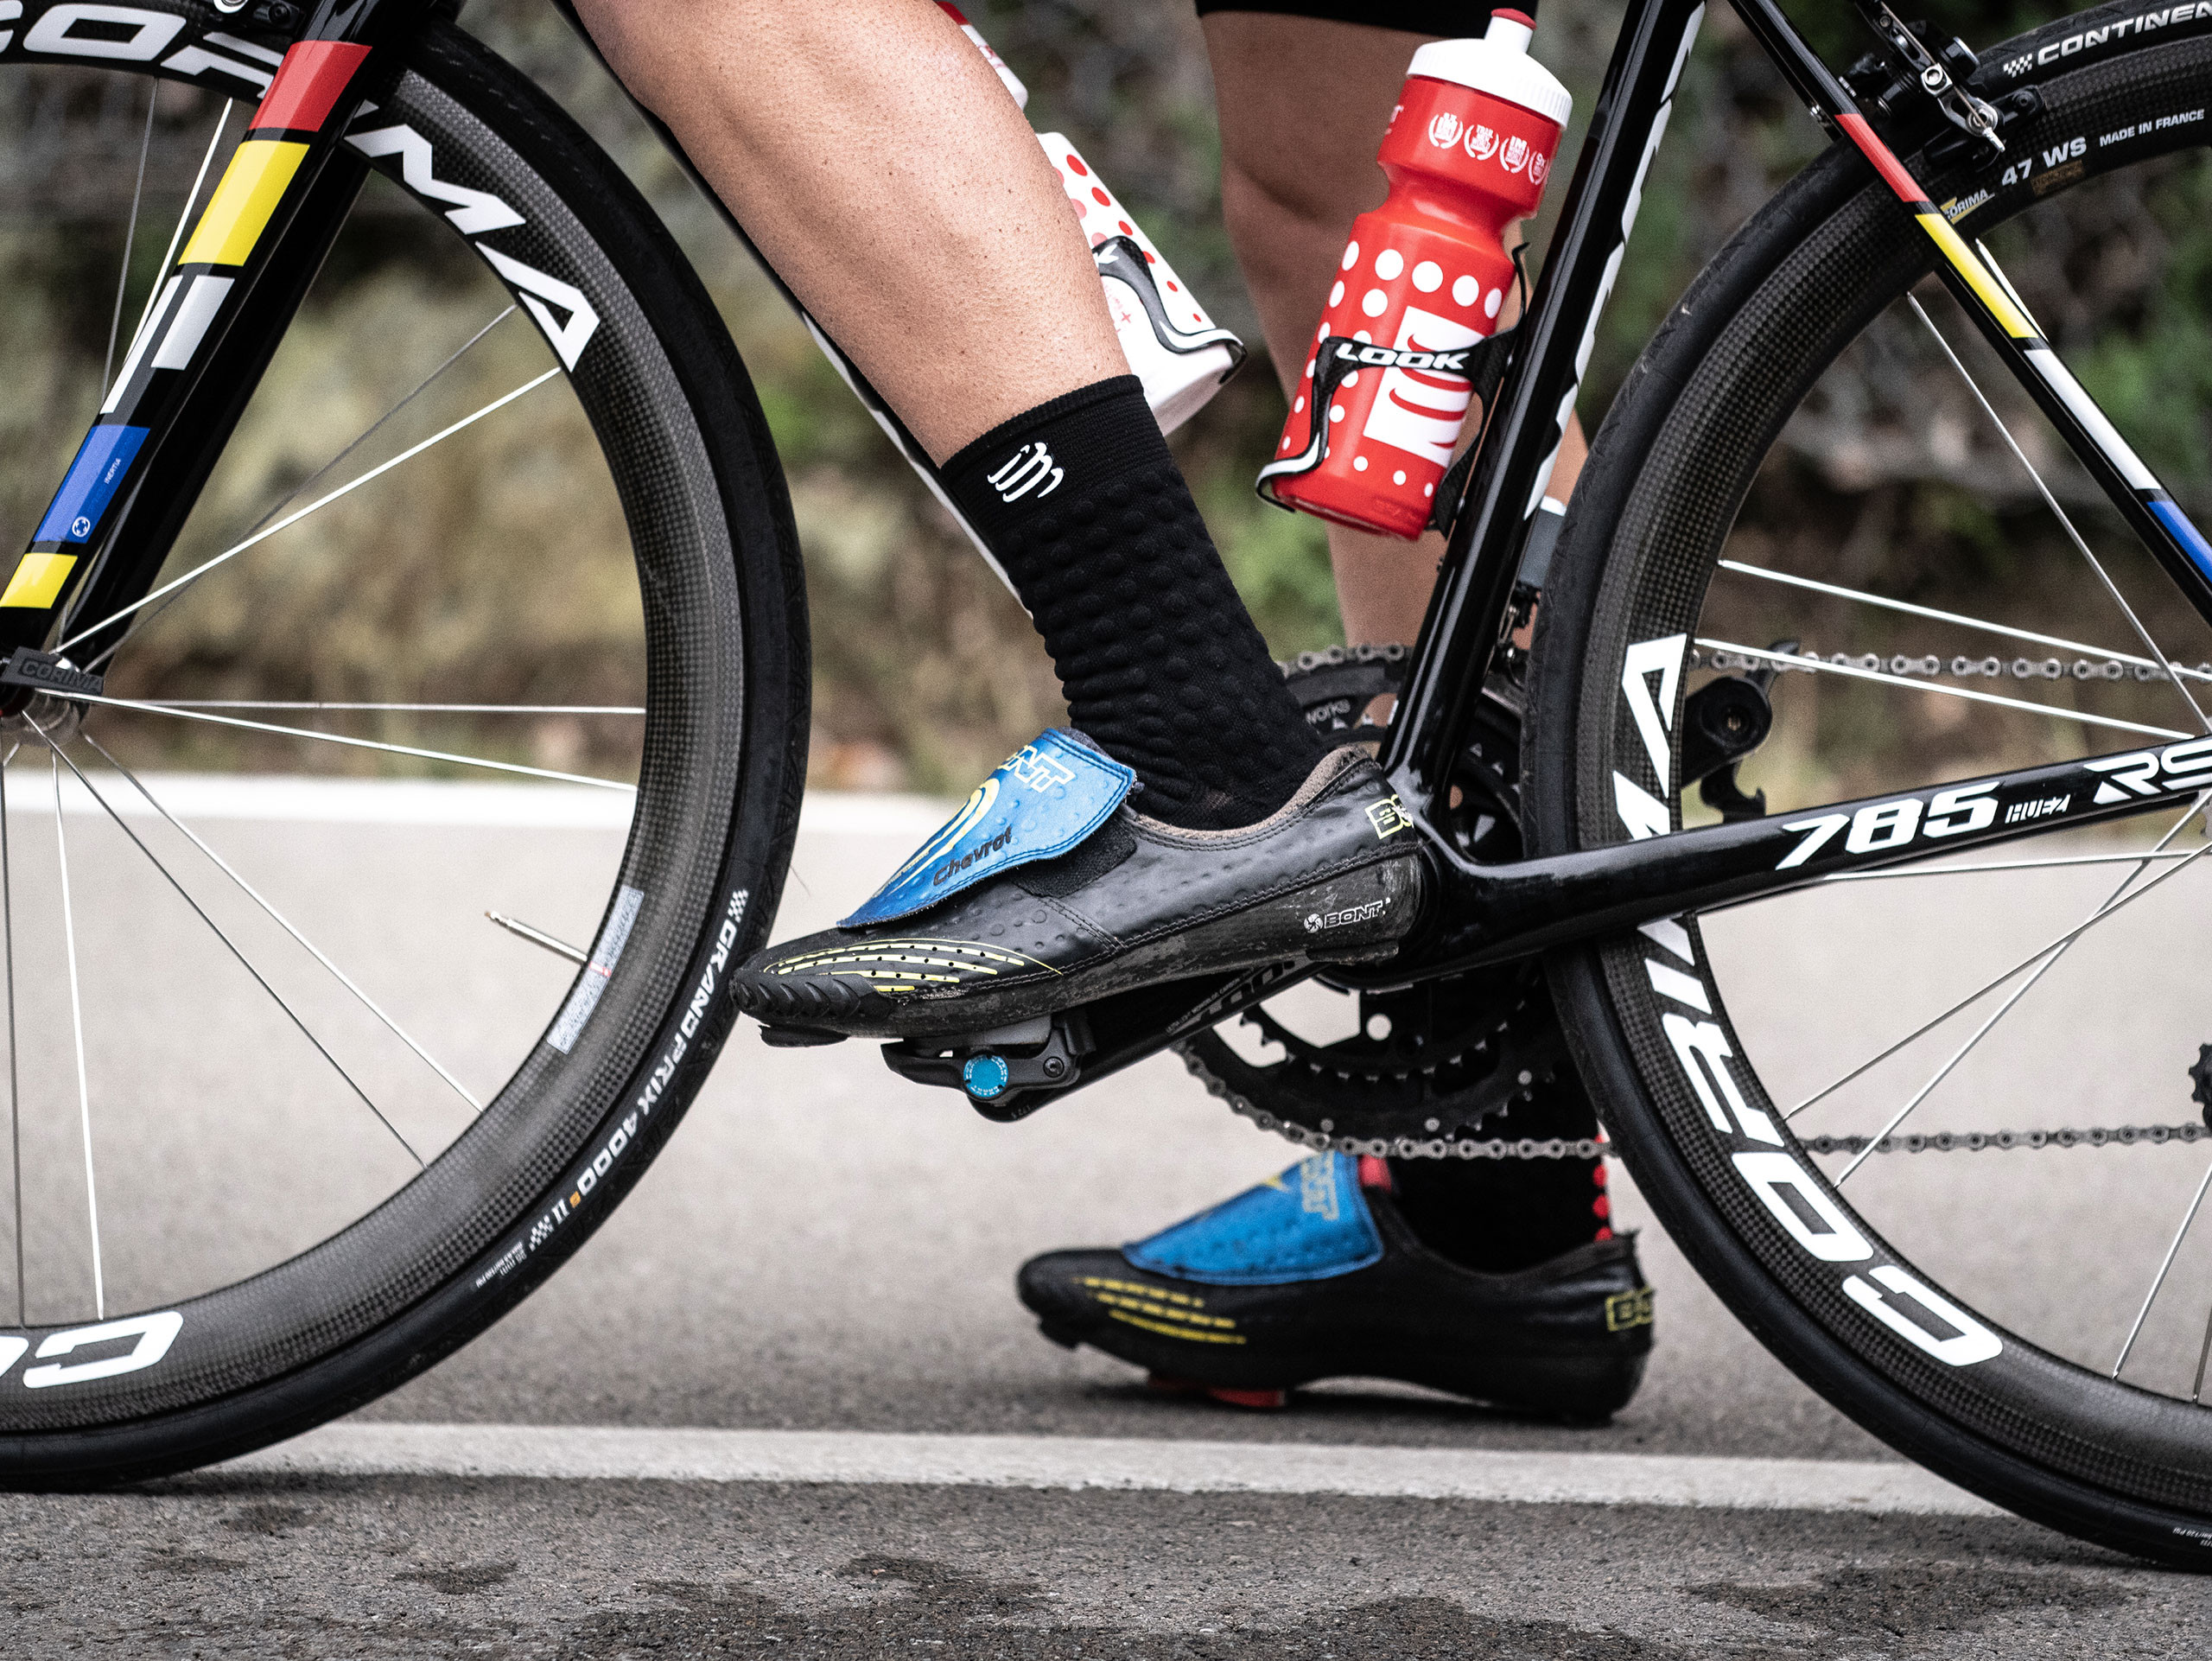 Pro Racing Socks v3.0 - Winter bike schwarz